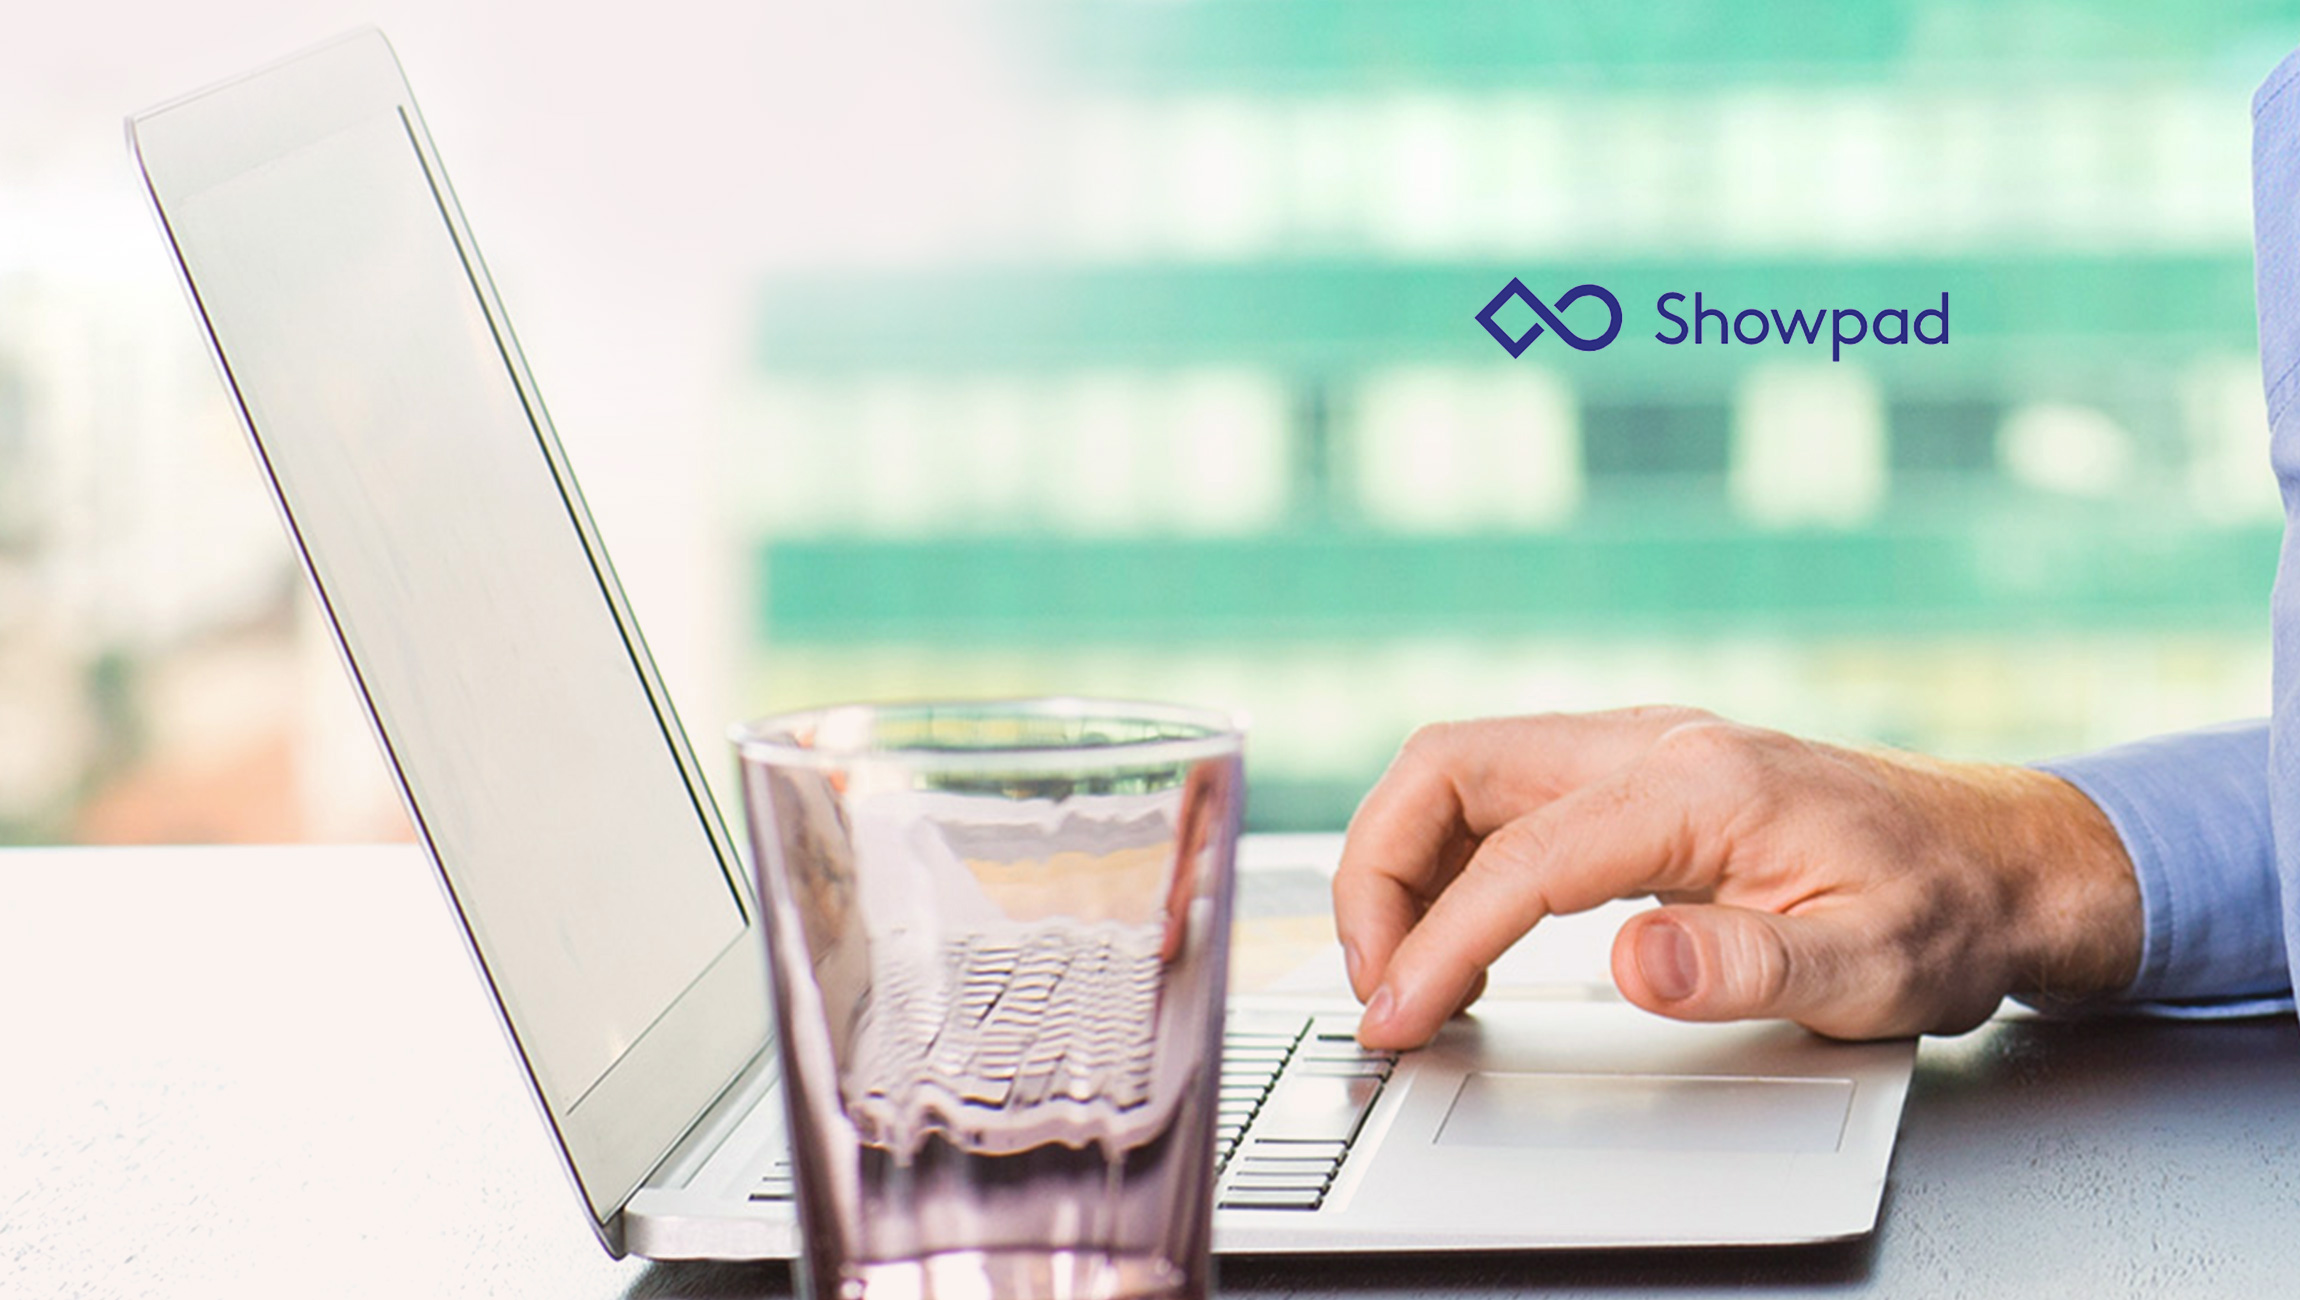 Showpad Introduces Unified Sales Enablement Platform, Combining Sales Content Delivery with Training and Coaching in a Single User Experience